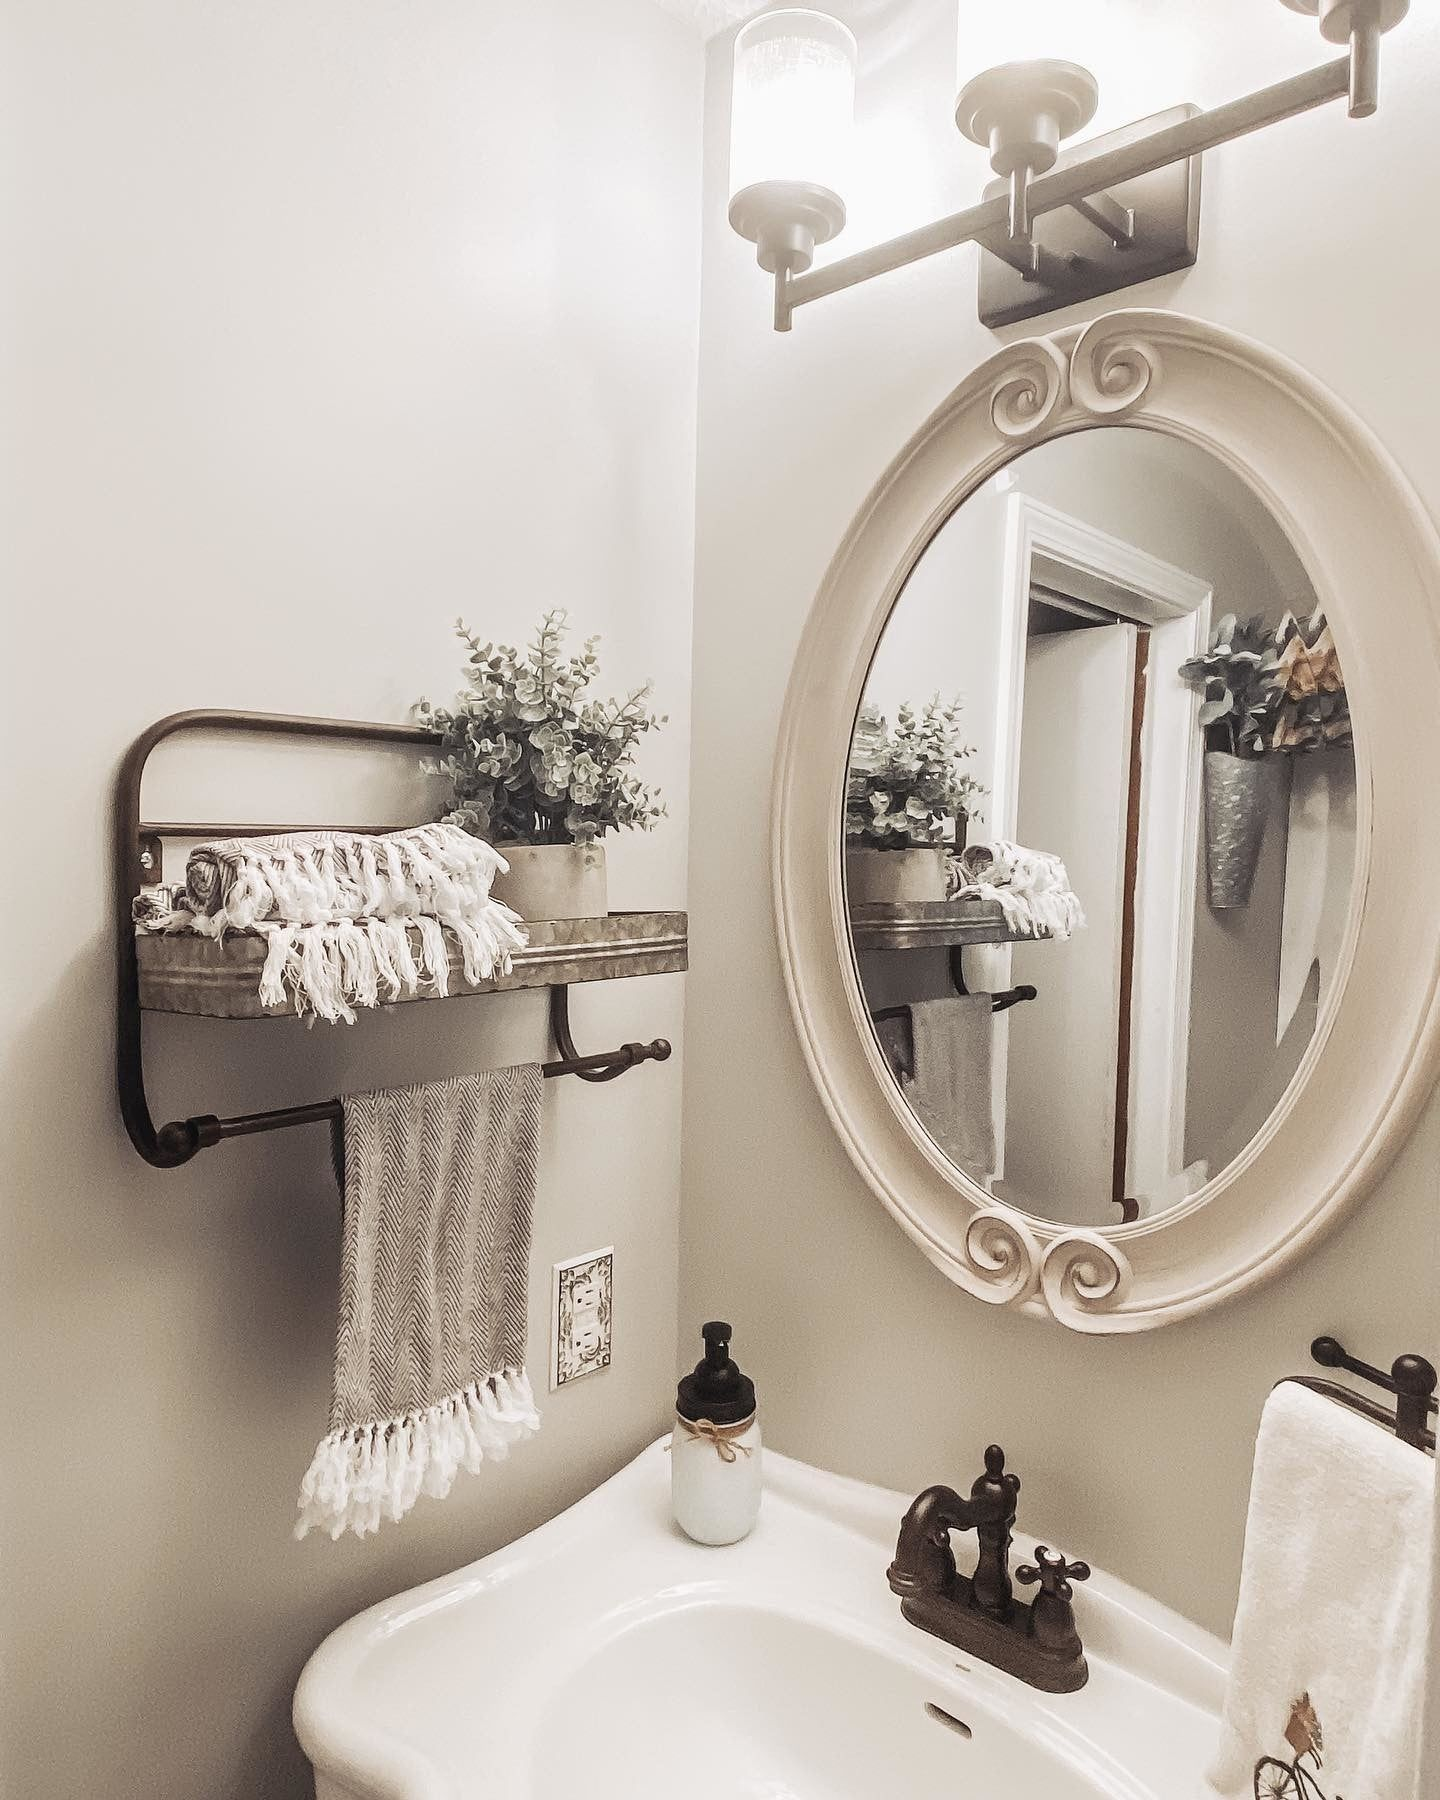 Ideas for your bathroom makeover! ✨ Tap the image to shop mirrors